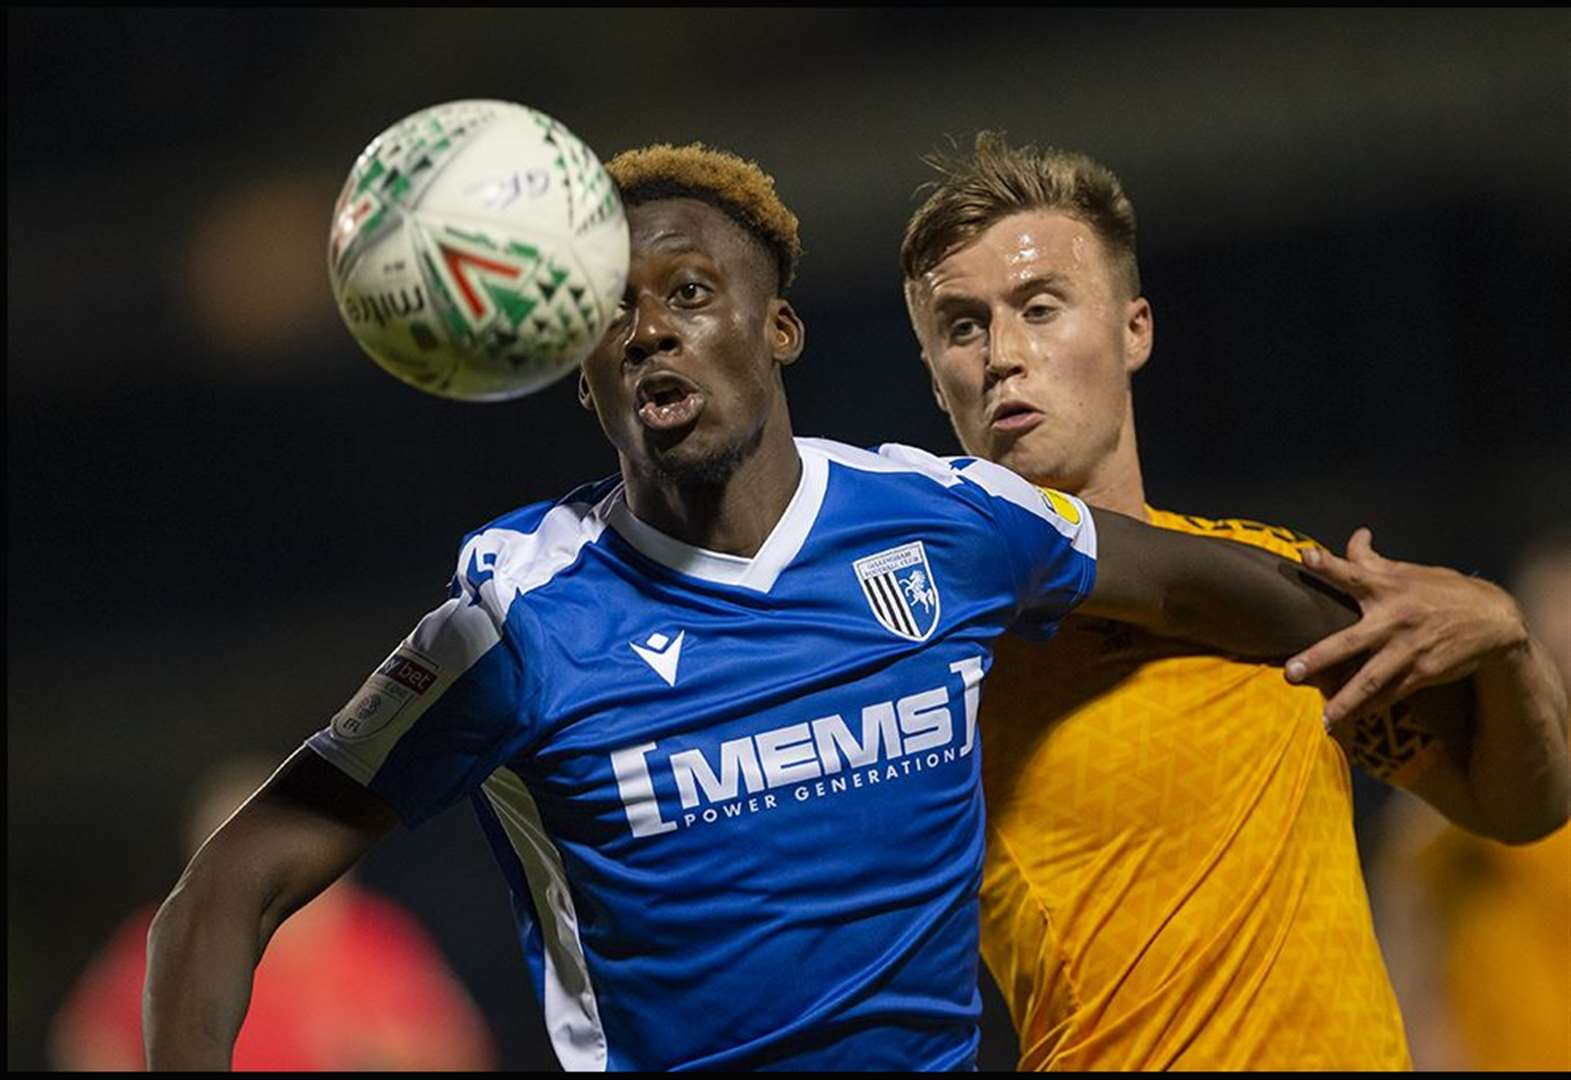 Report: Gills out on penalties